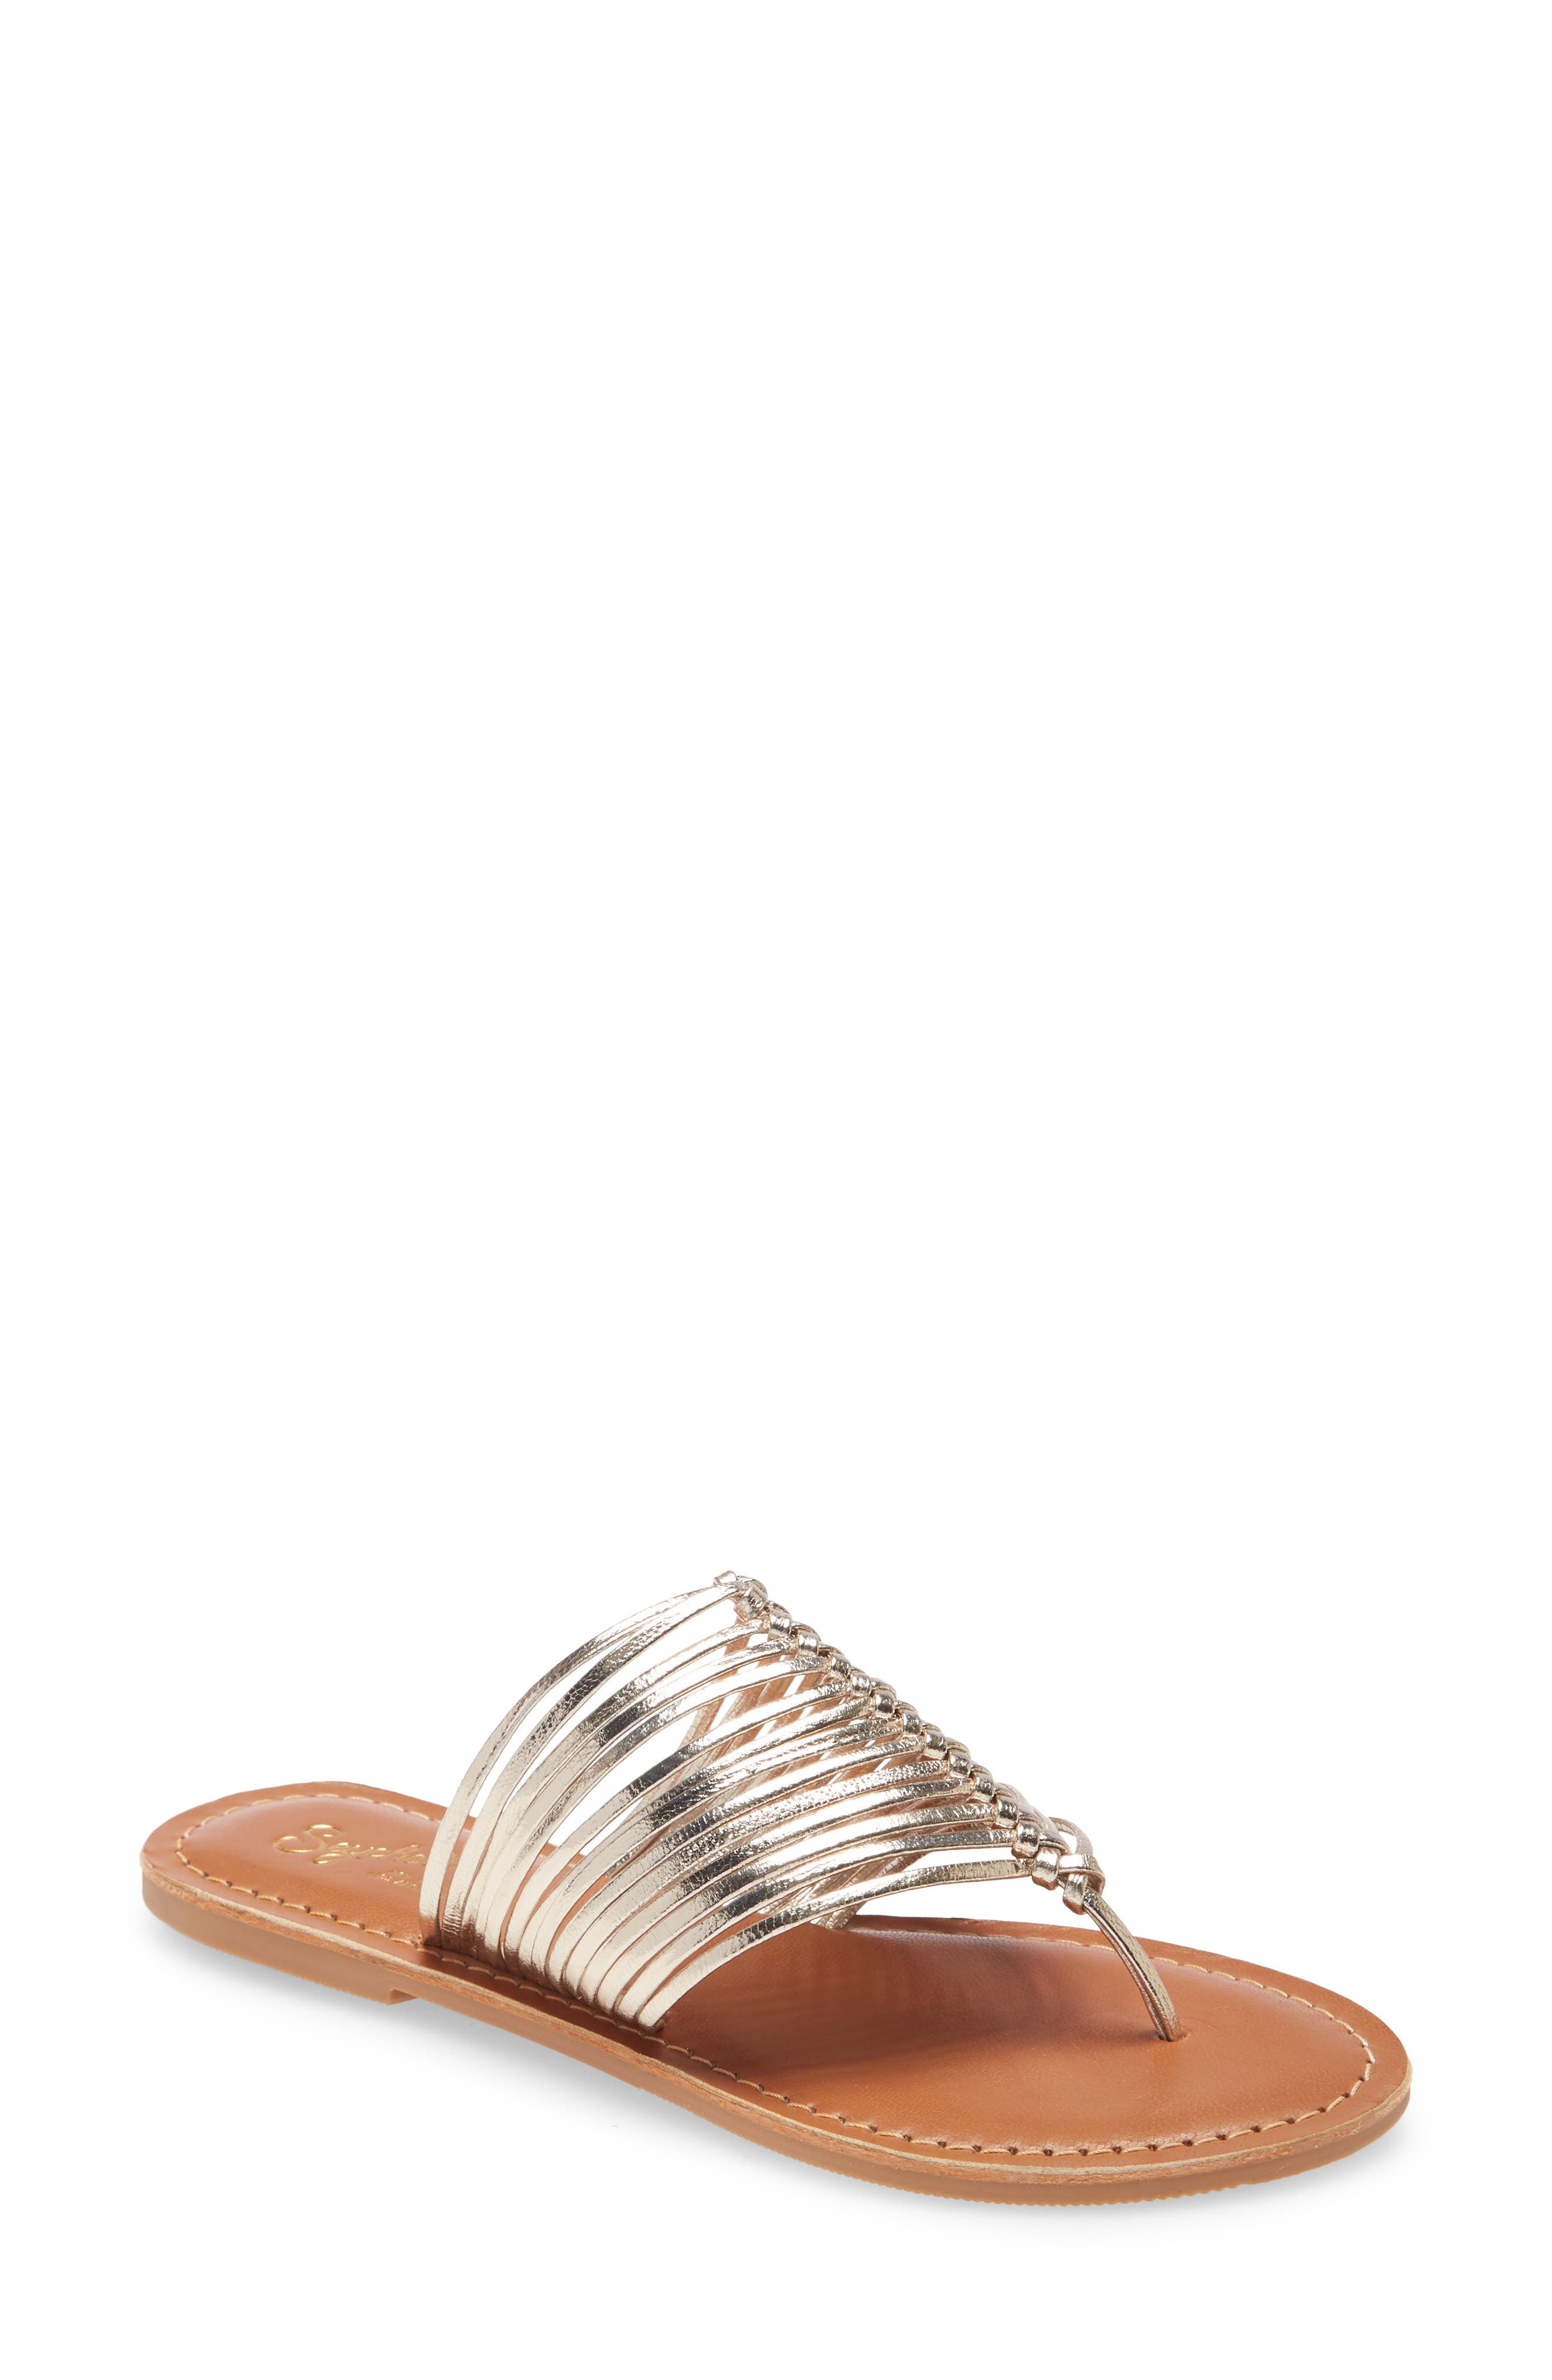 Shimmery straps add a hint of glamour to this quintessential flip-flop. Style Name: Seychelles Bright Eyed Flip Flop (Women). Style Number: 5947381. Available in stores.